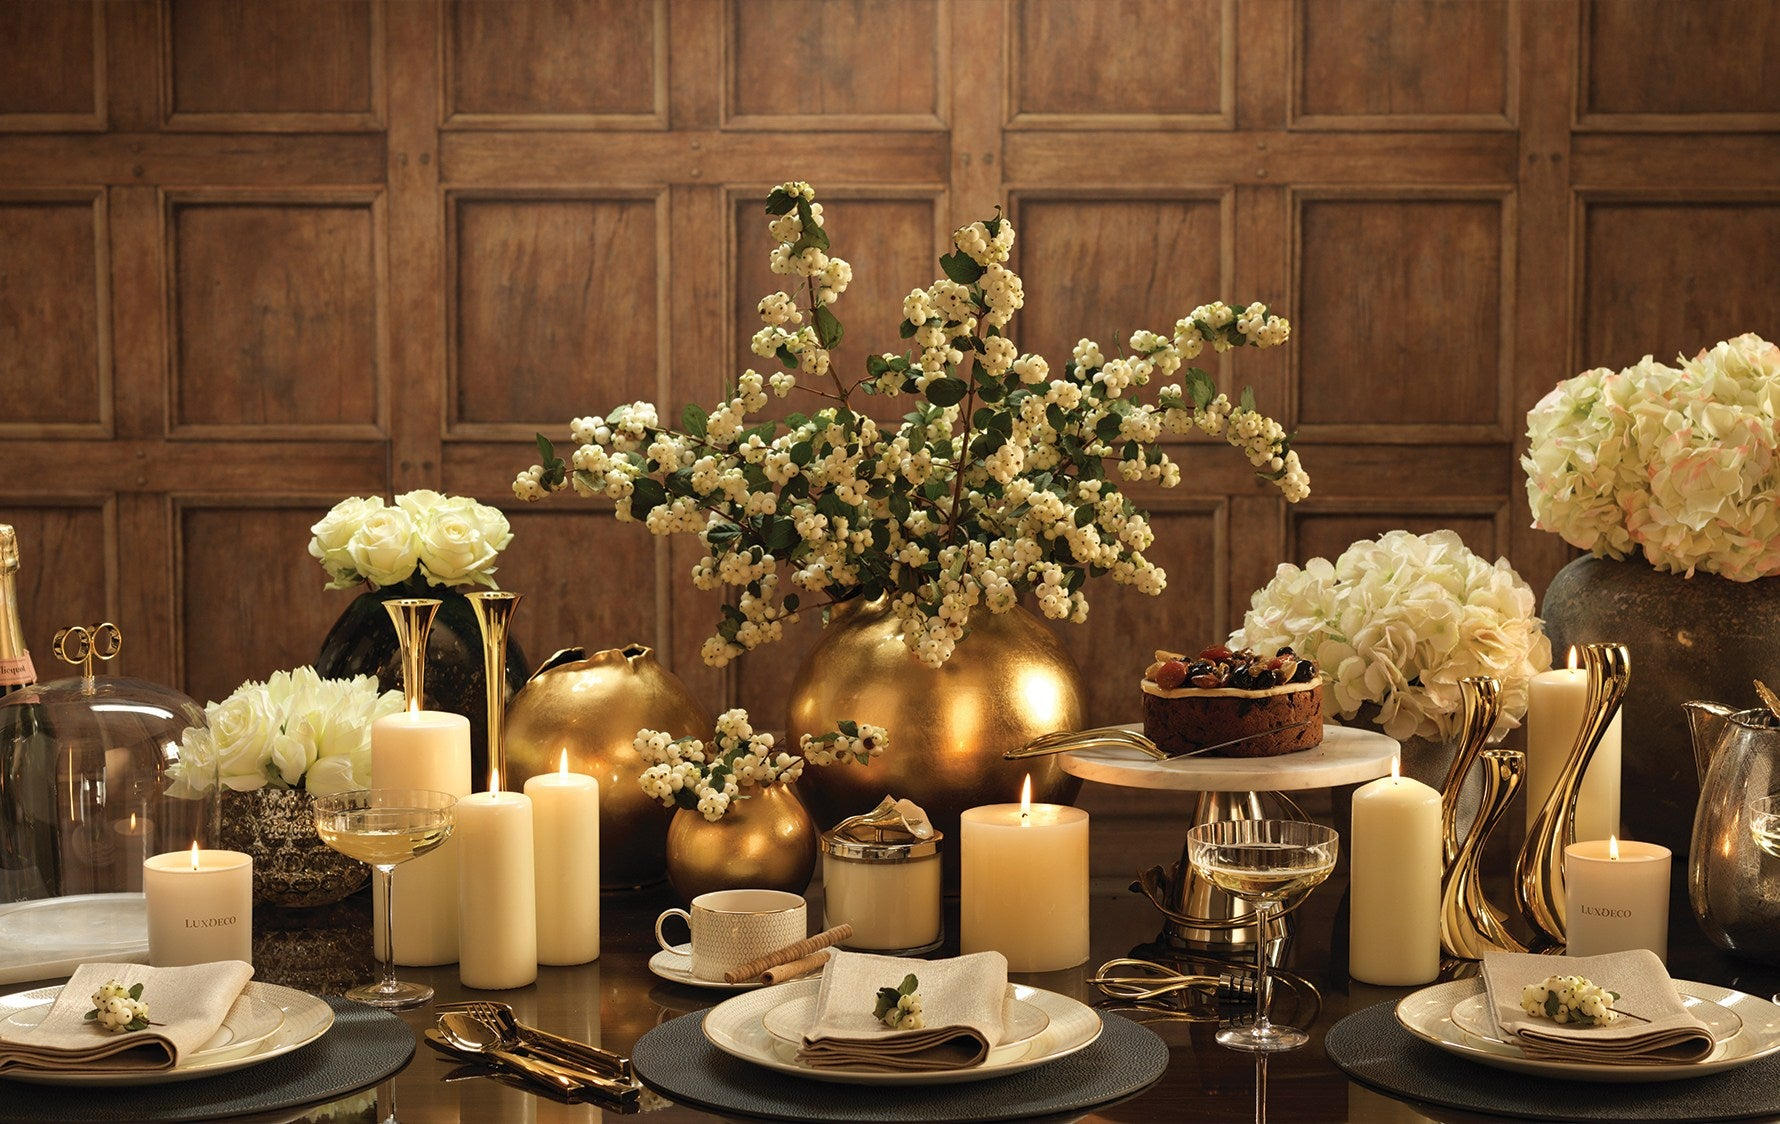 Winter Decorating Ideas | Use Winter Themed Table Decorations | Shop luxury dinnerware online at LuxDeco.com